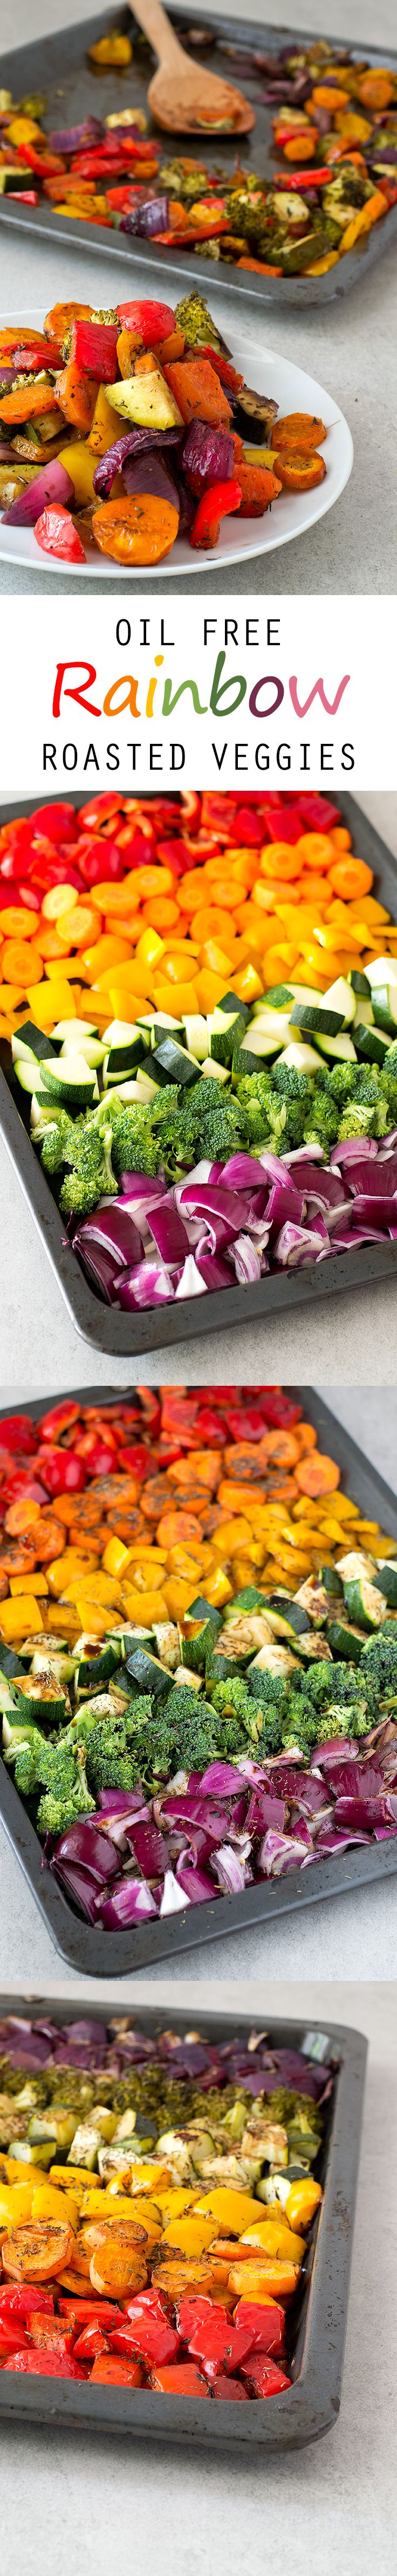 Oil Free Rainbow Roasted Vegetables - a colorful diet is a healthy one :-)